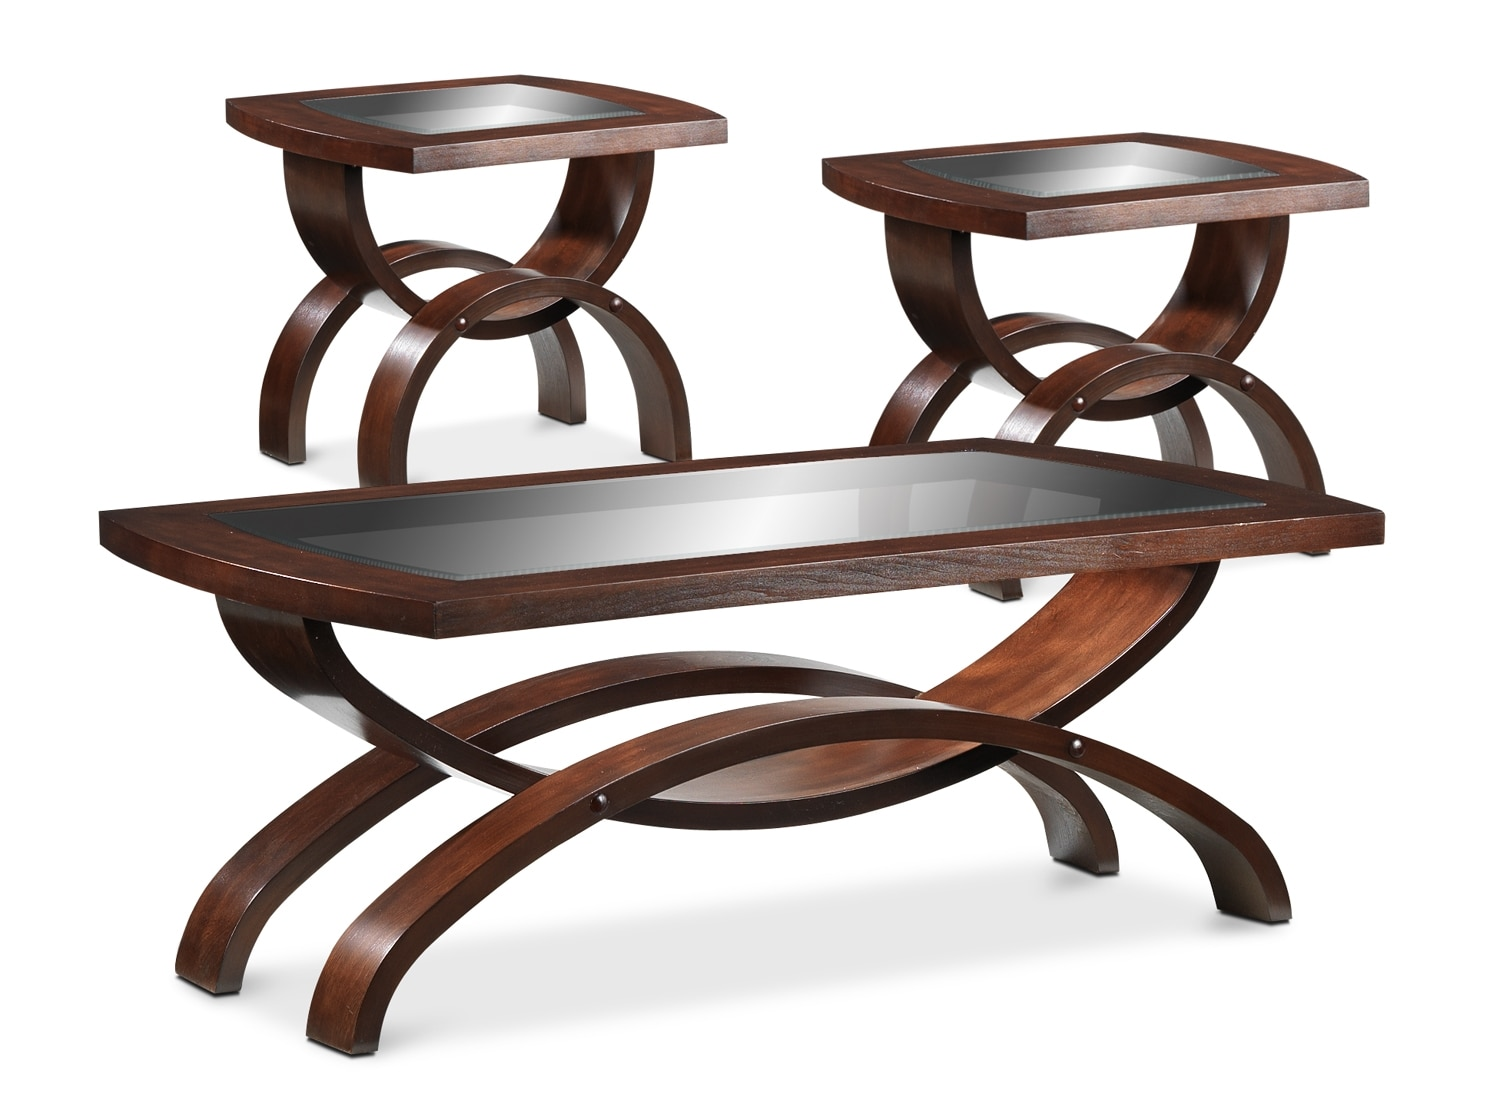 Barton Coffee Table and Two End Tables - Chocolate